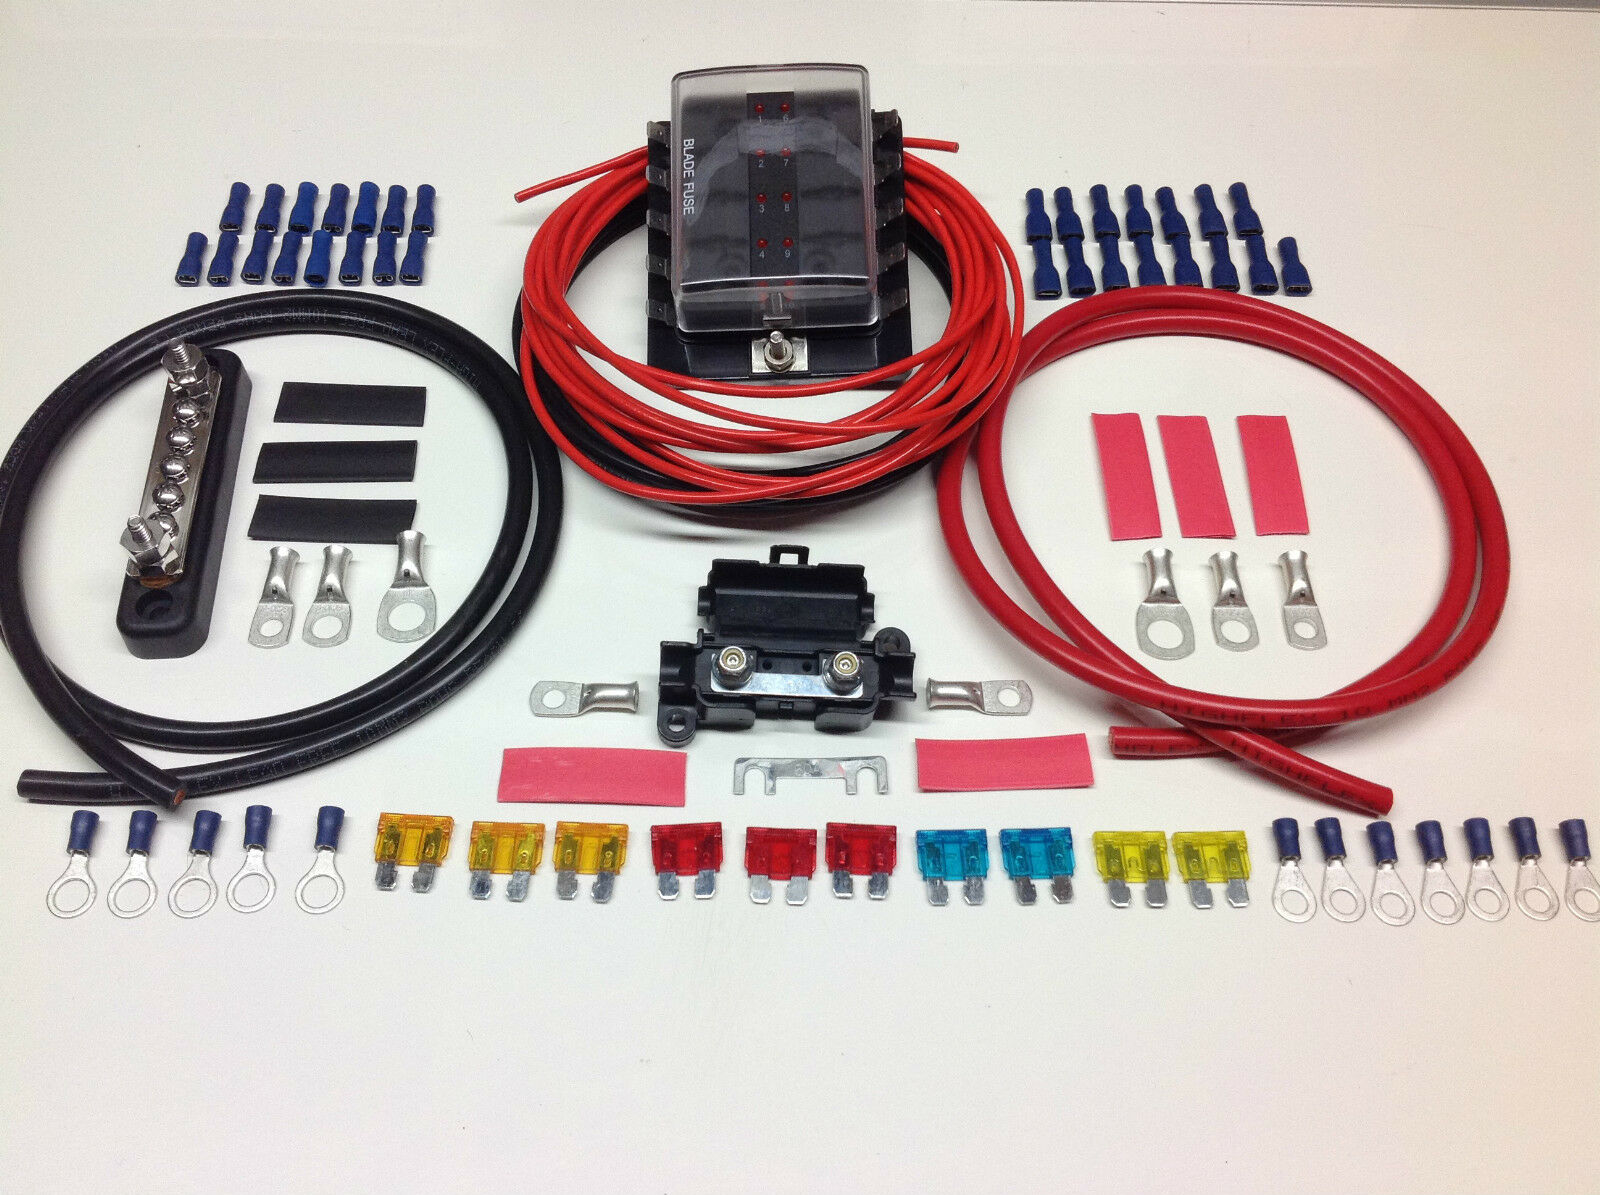 10 Way Fuse box distribution kit with Negative Bus bar cable Terminals &  Fuses 1 of 1FREE Shipping See More